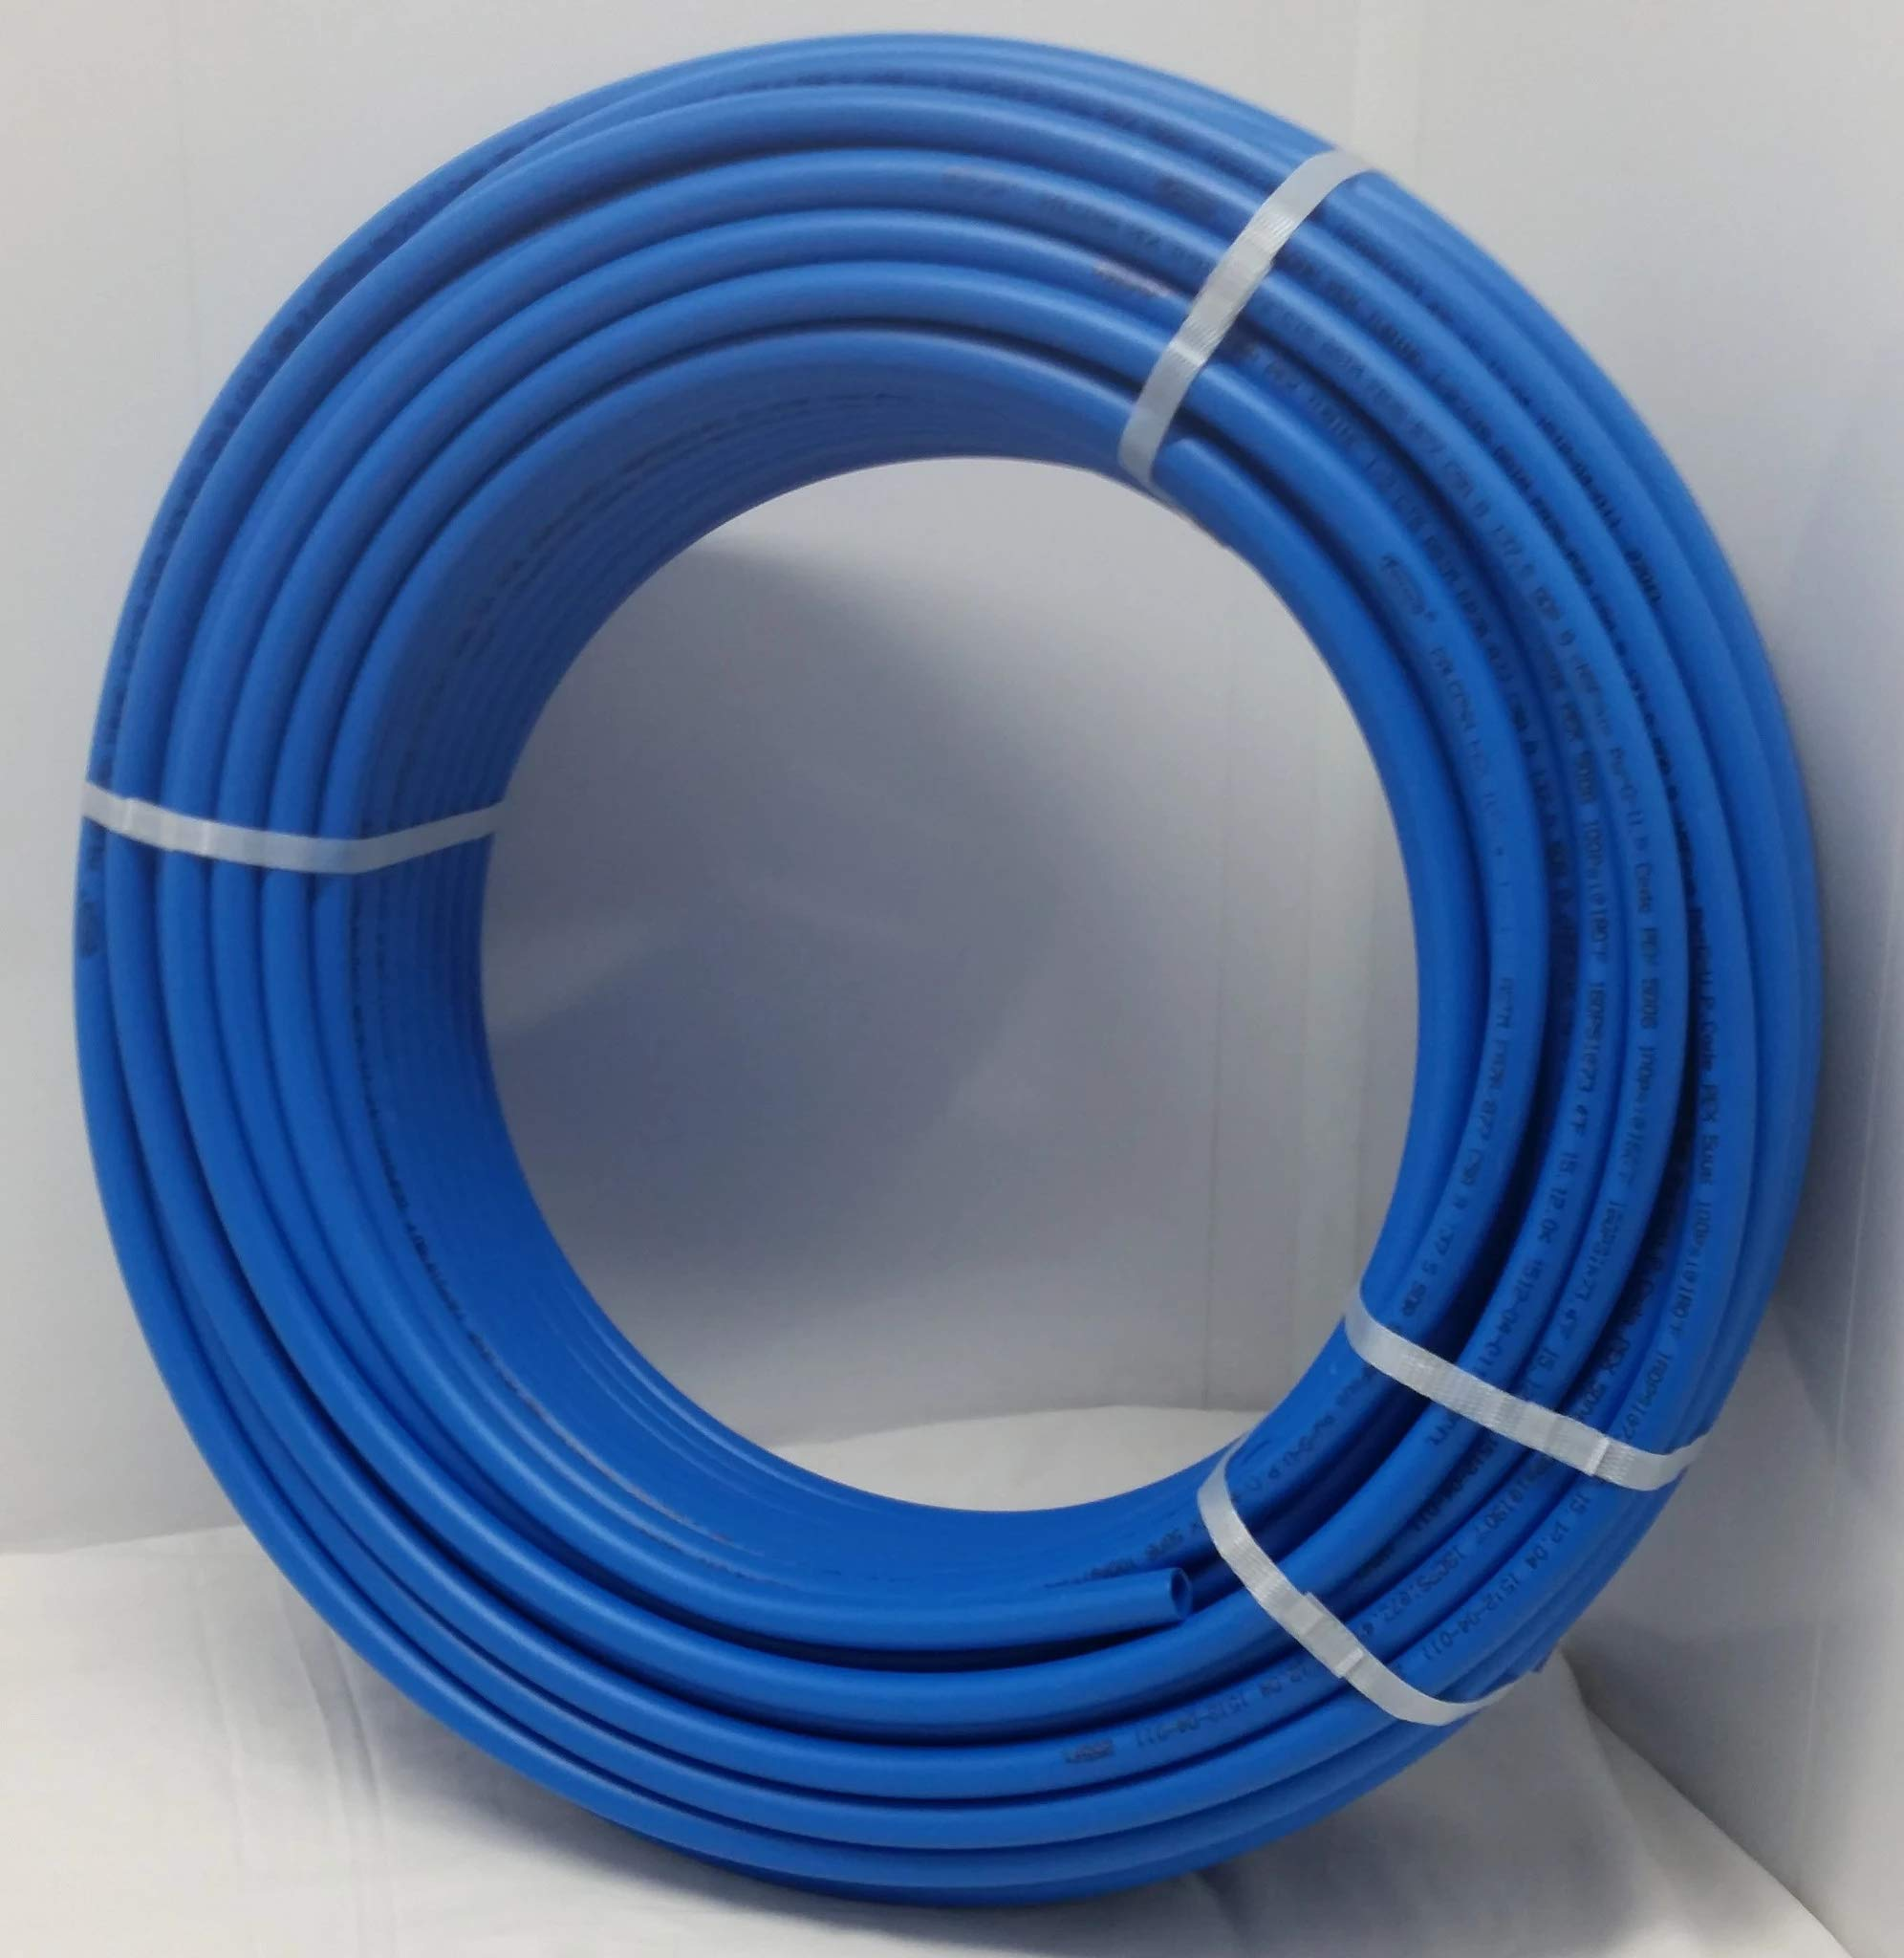 1' - 100' Coil - Blue Certified Non-Barrier PEX Tubing Htg/Plbg/Potable Water by Badger